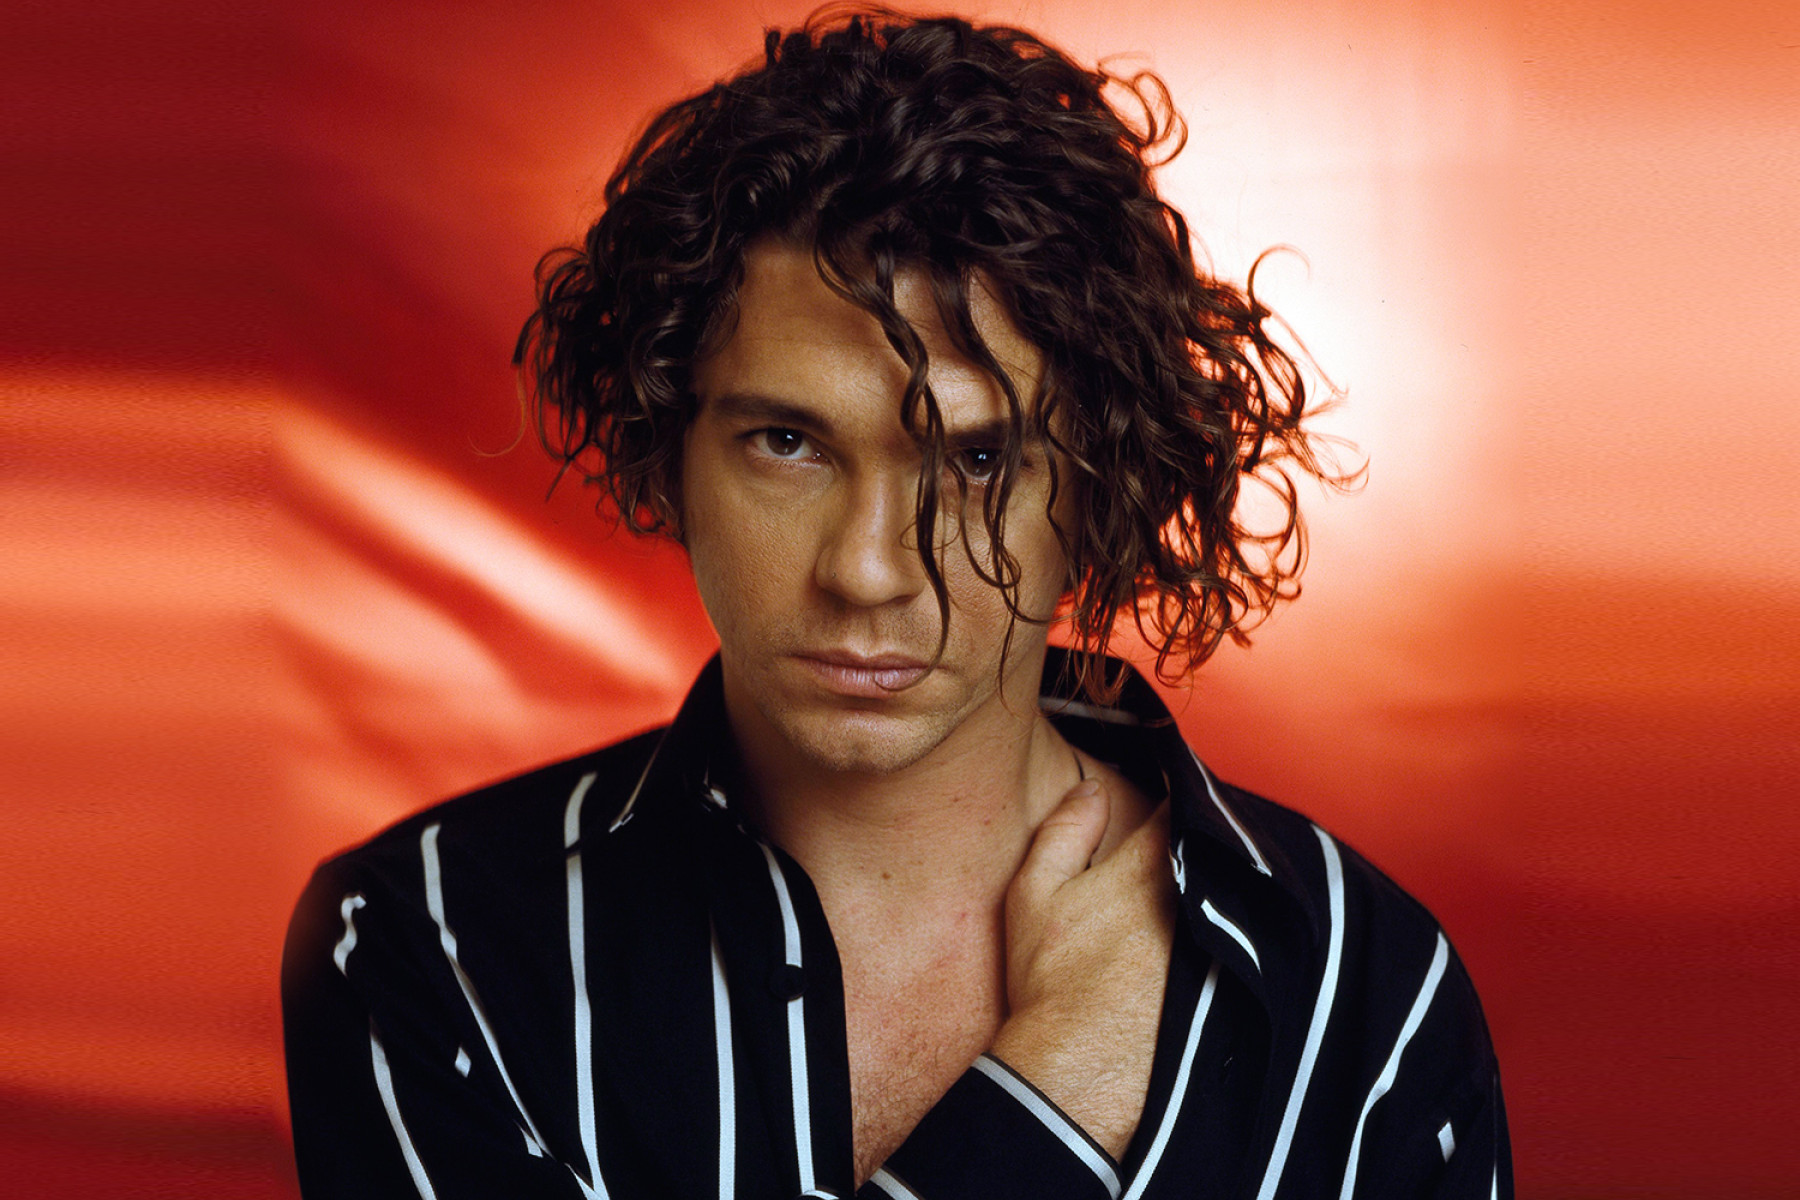 rs-michael-hutchence